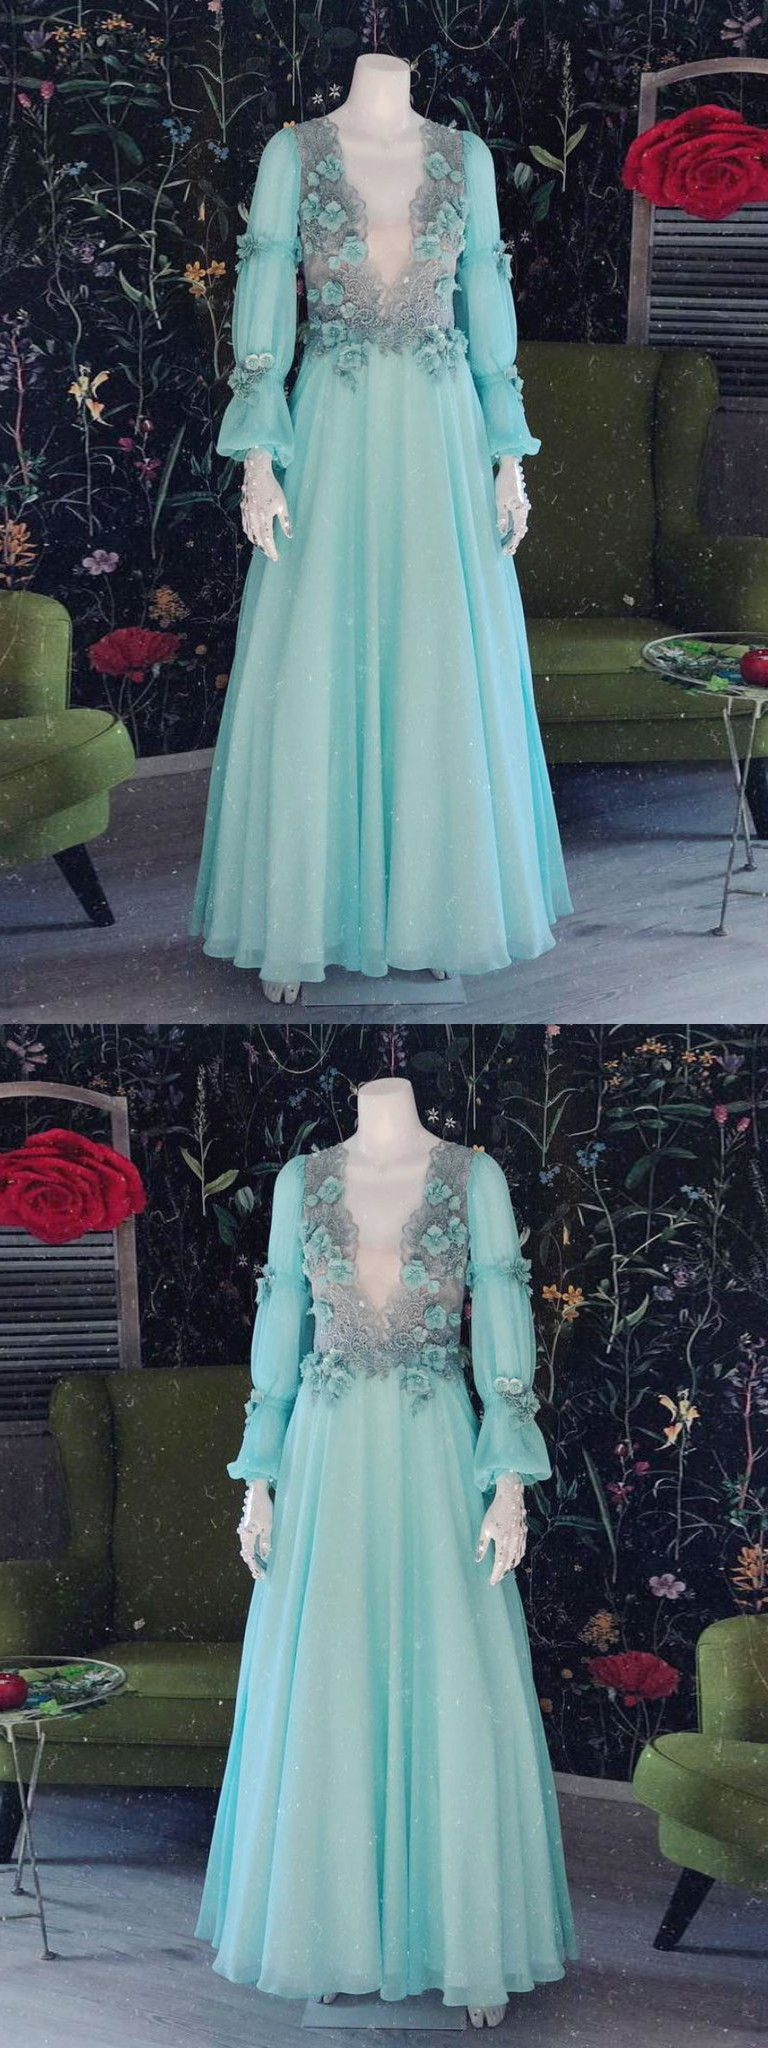 chic aline v neck applique prom dresses unique long sleeve